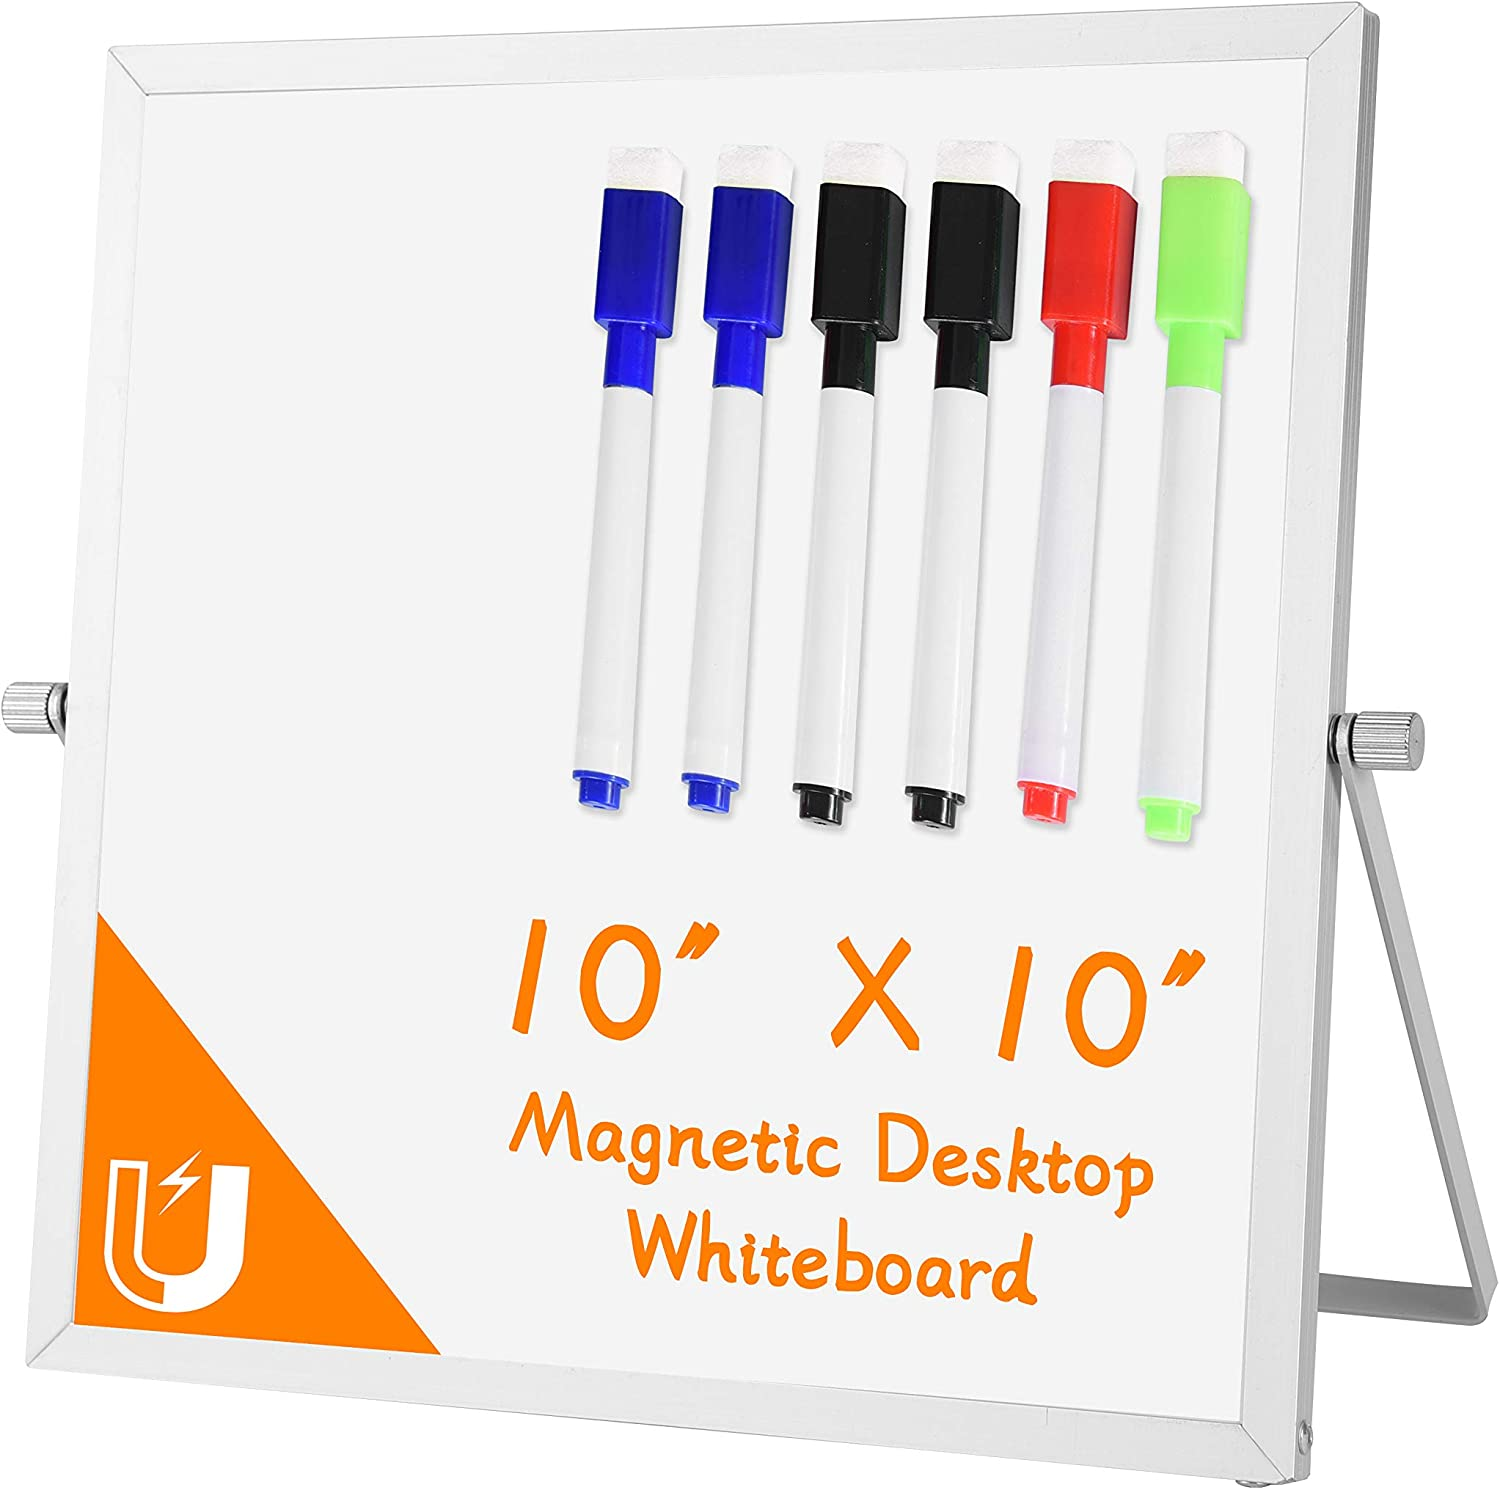 "Small Dry Erase Board Whiteboard – Desktop Portable Mini White Board Desk Easel 10""x 10"", 360 Degree Reversible to Do List Notepad for Office, Home, School. …"